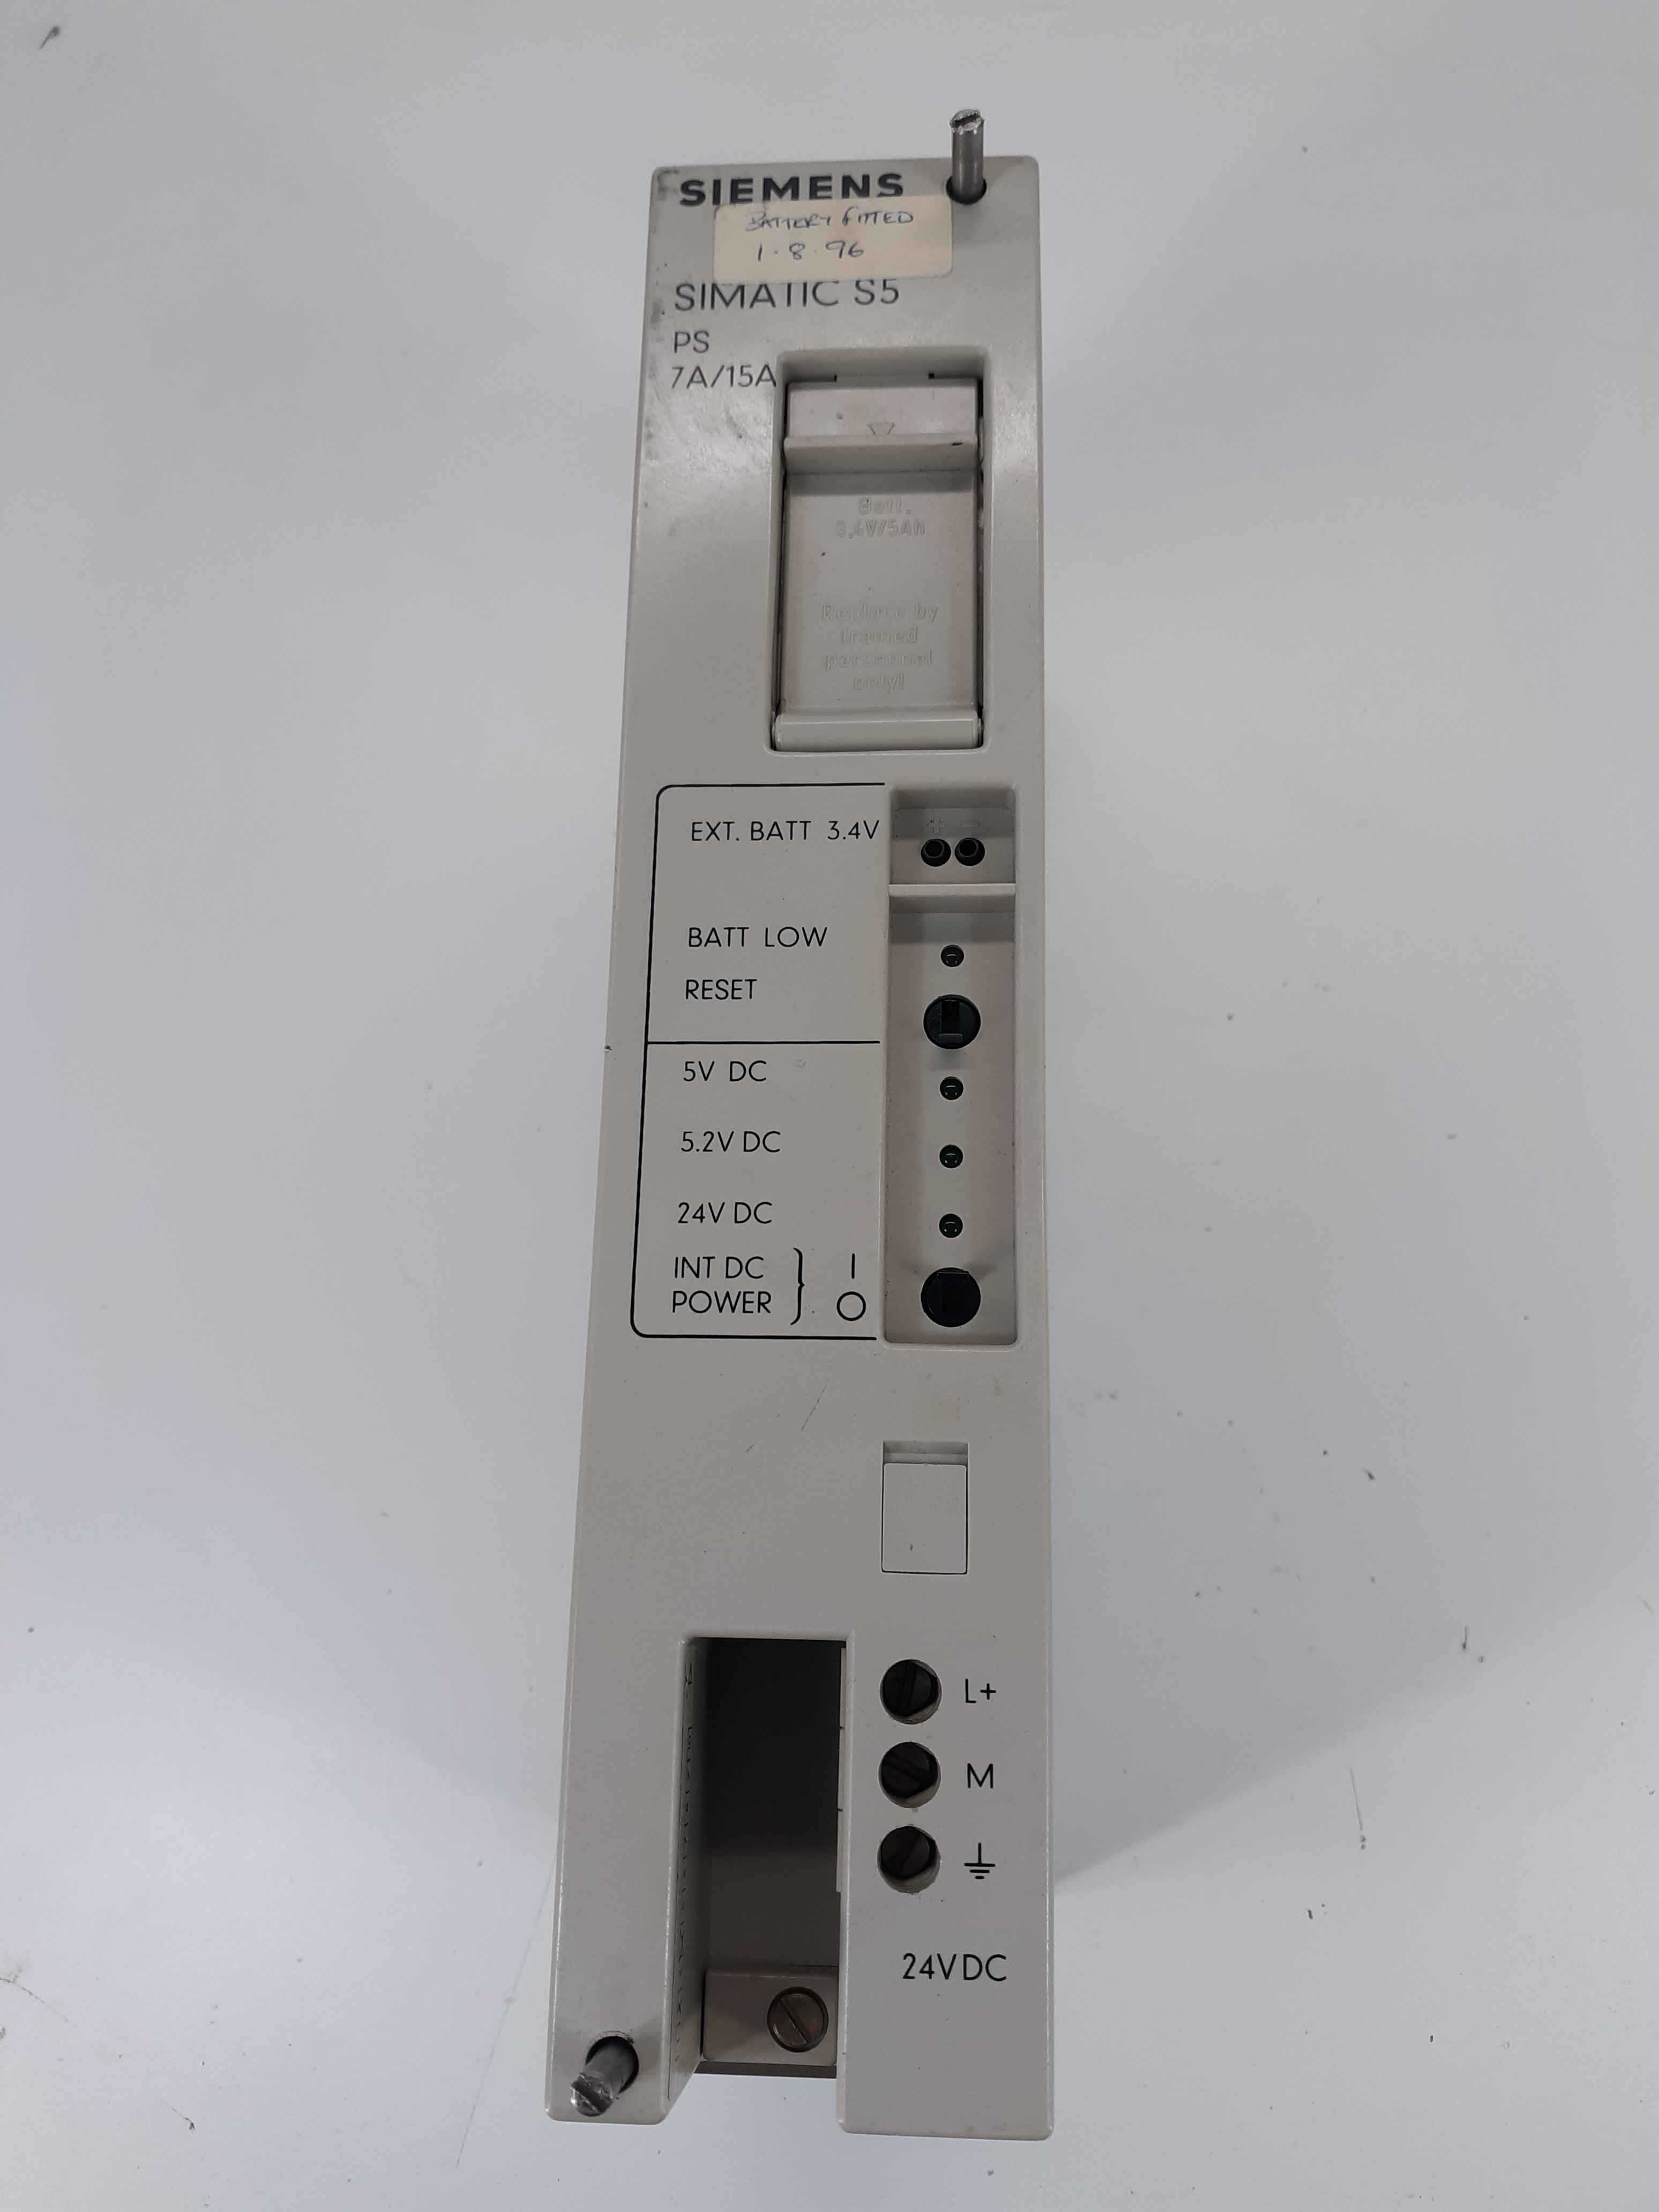 Siemens E24G5/15WRGD Simatics S5 PS 7A/15A Power Supply